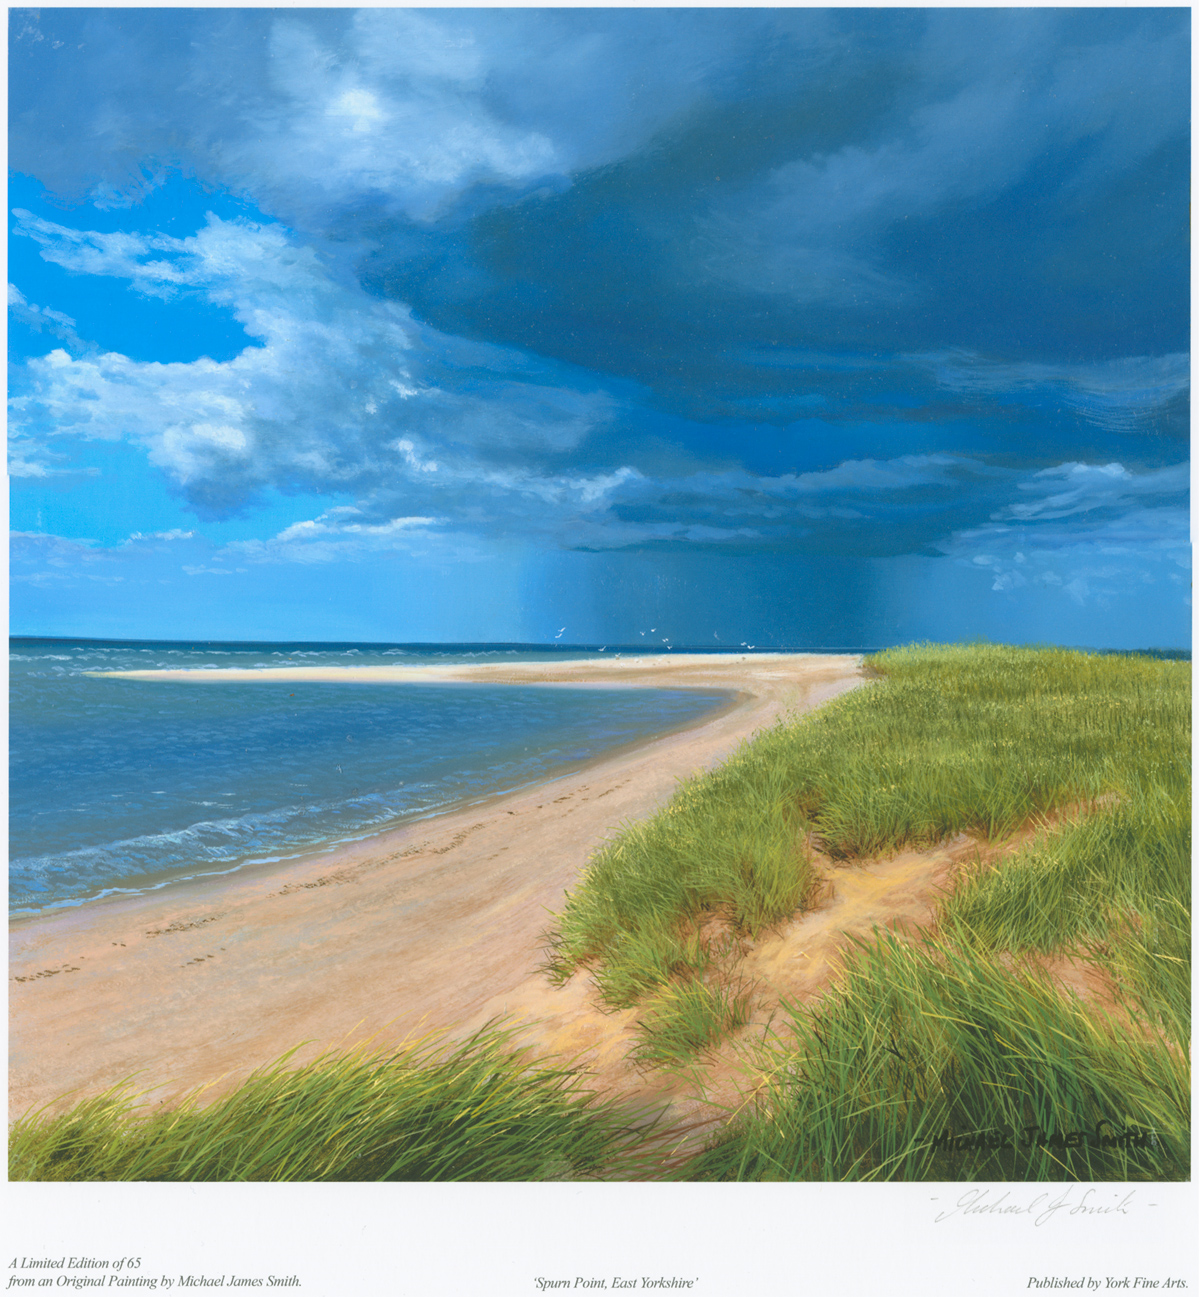 Michael James Smith, Signed limited edition print, Spurn Point, East Yorkshire Click to enlarge